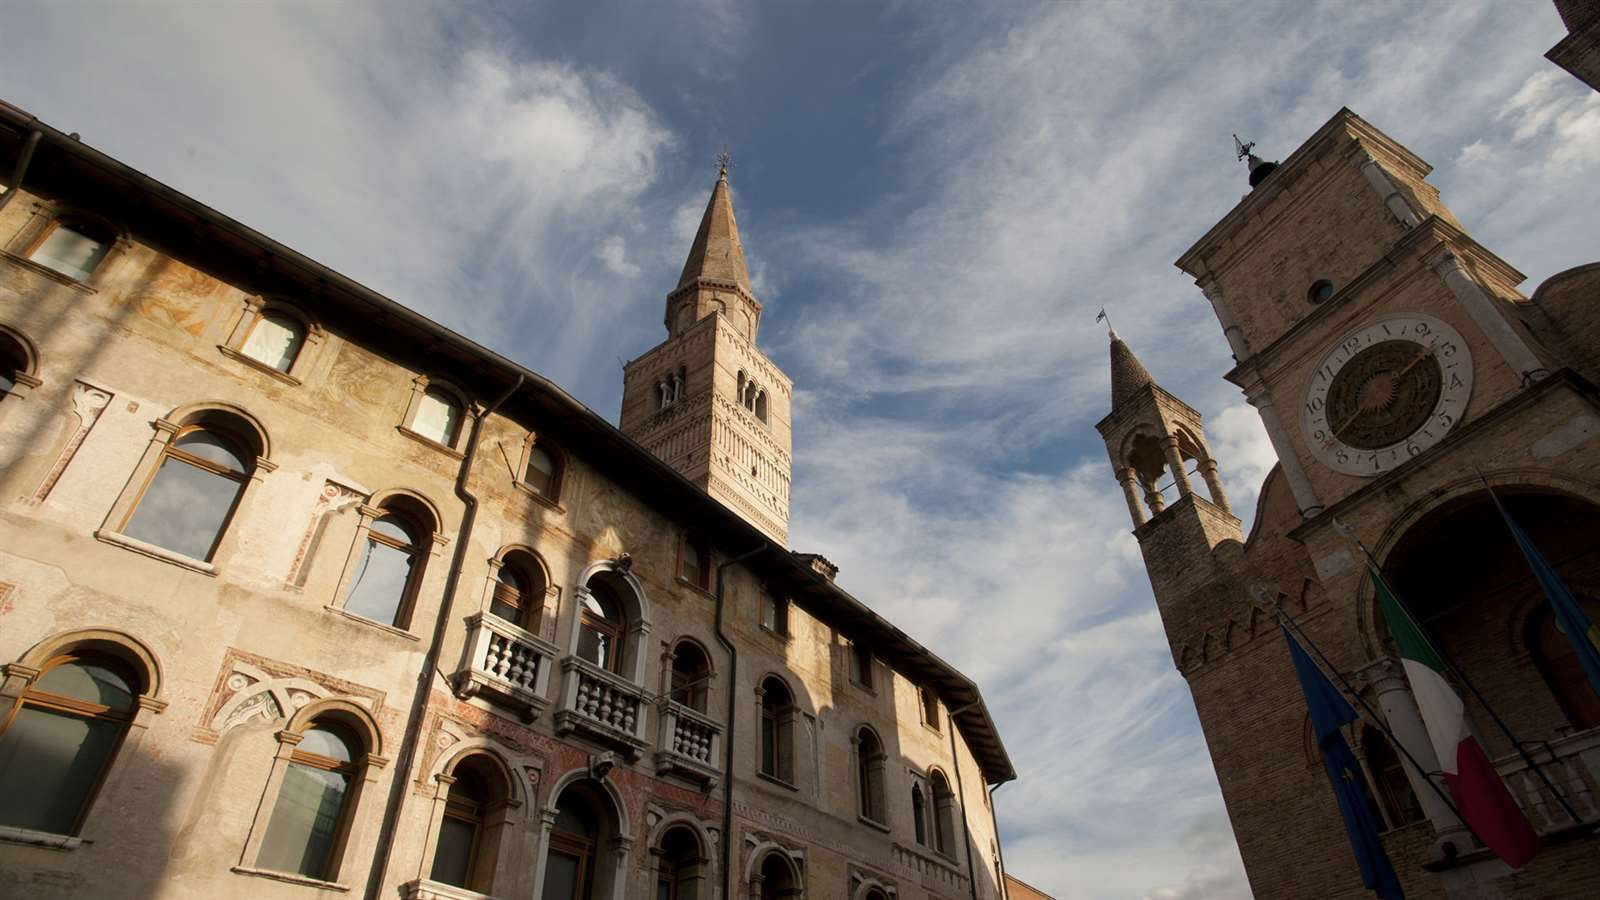 Cathedral of Pordenone